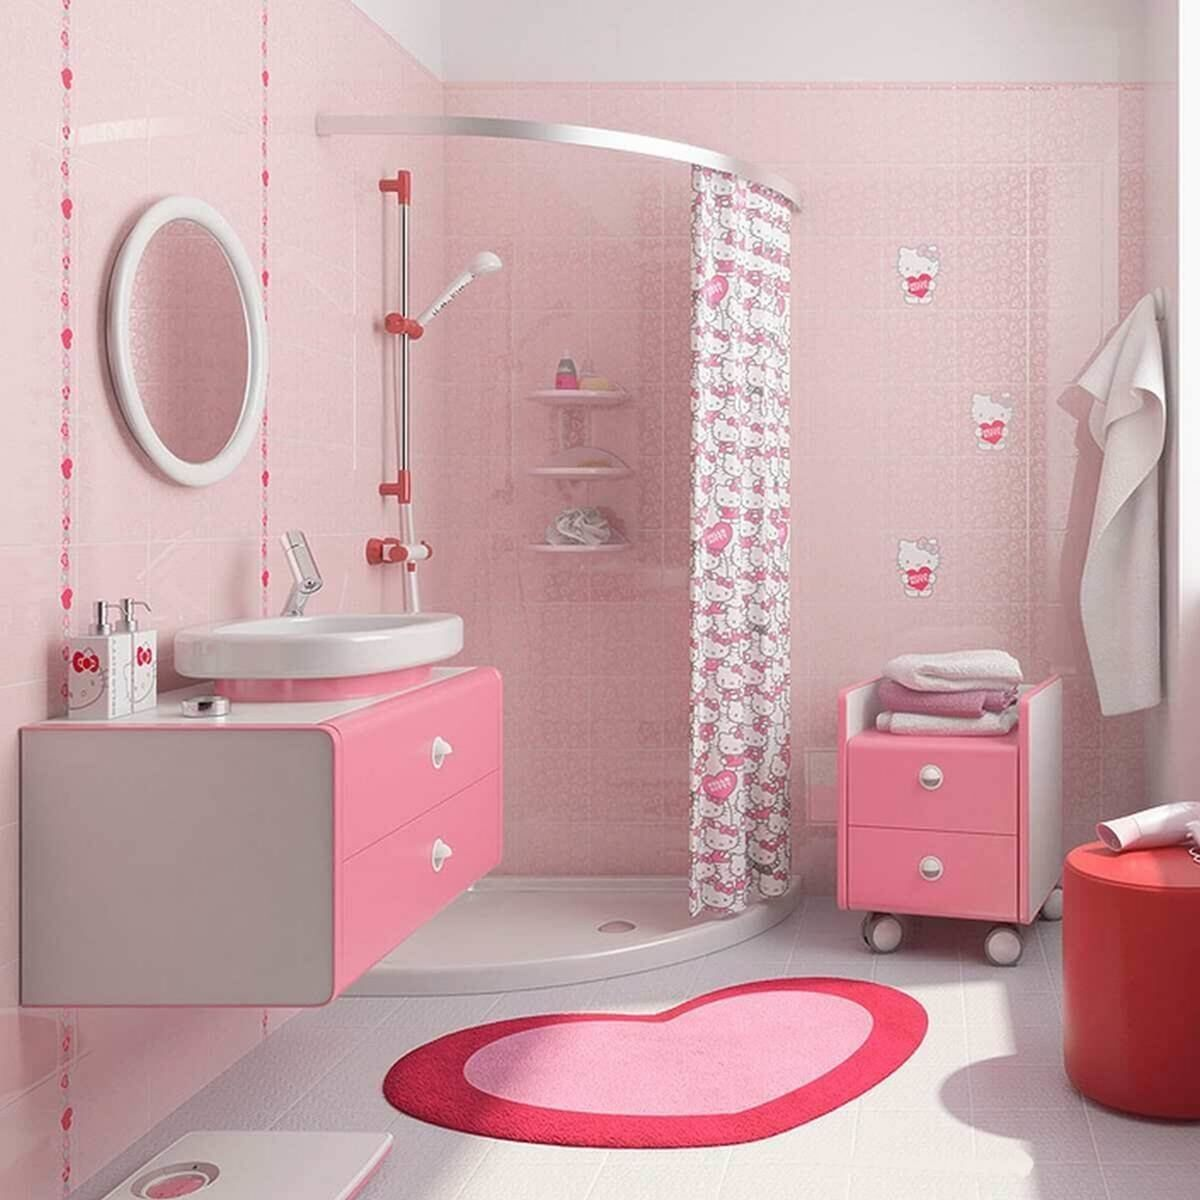 30 Beautiful Pink Shades Bathroom Designs For Your Perfect